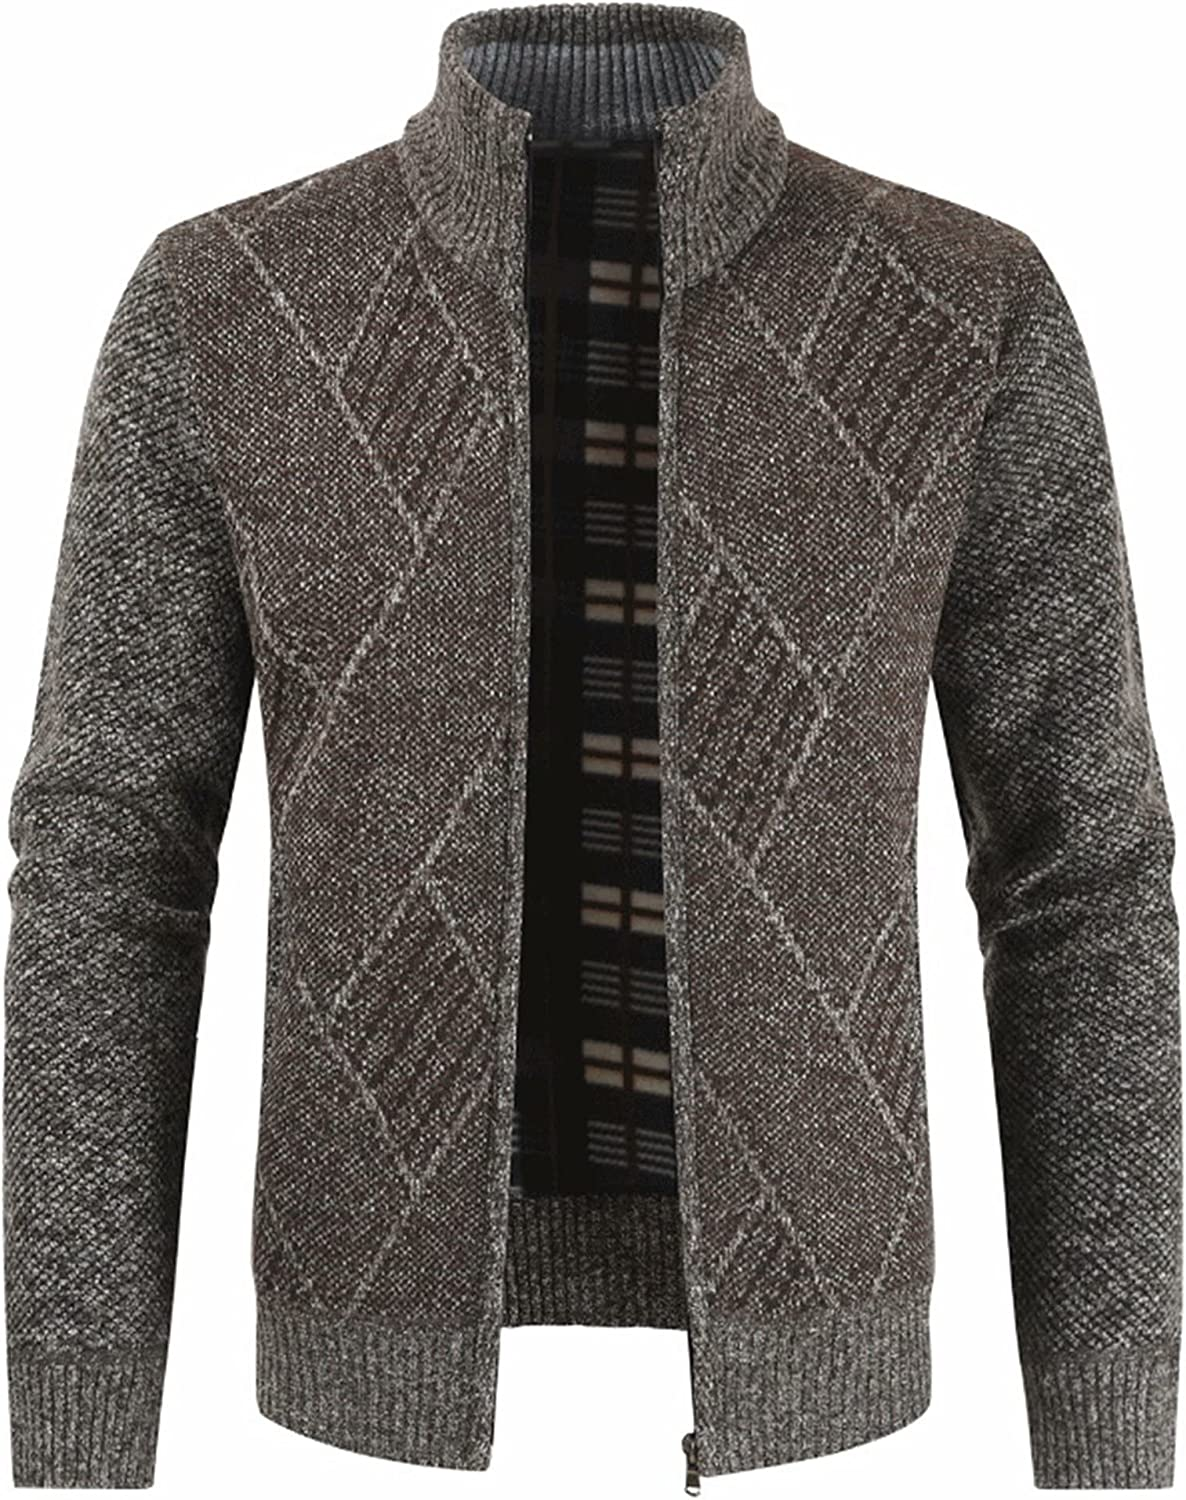 VtuAOL Men's Casual Slim Zip Sweaters Selling rankings Thick Up Cardigan Knitted Max 60% OFF